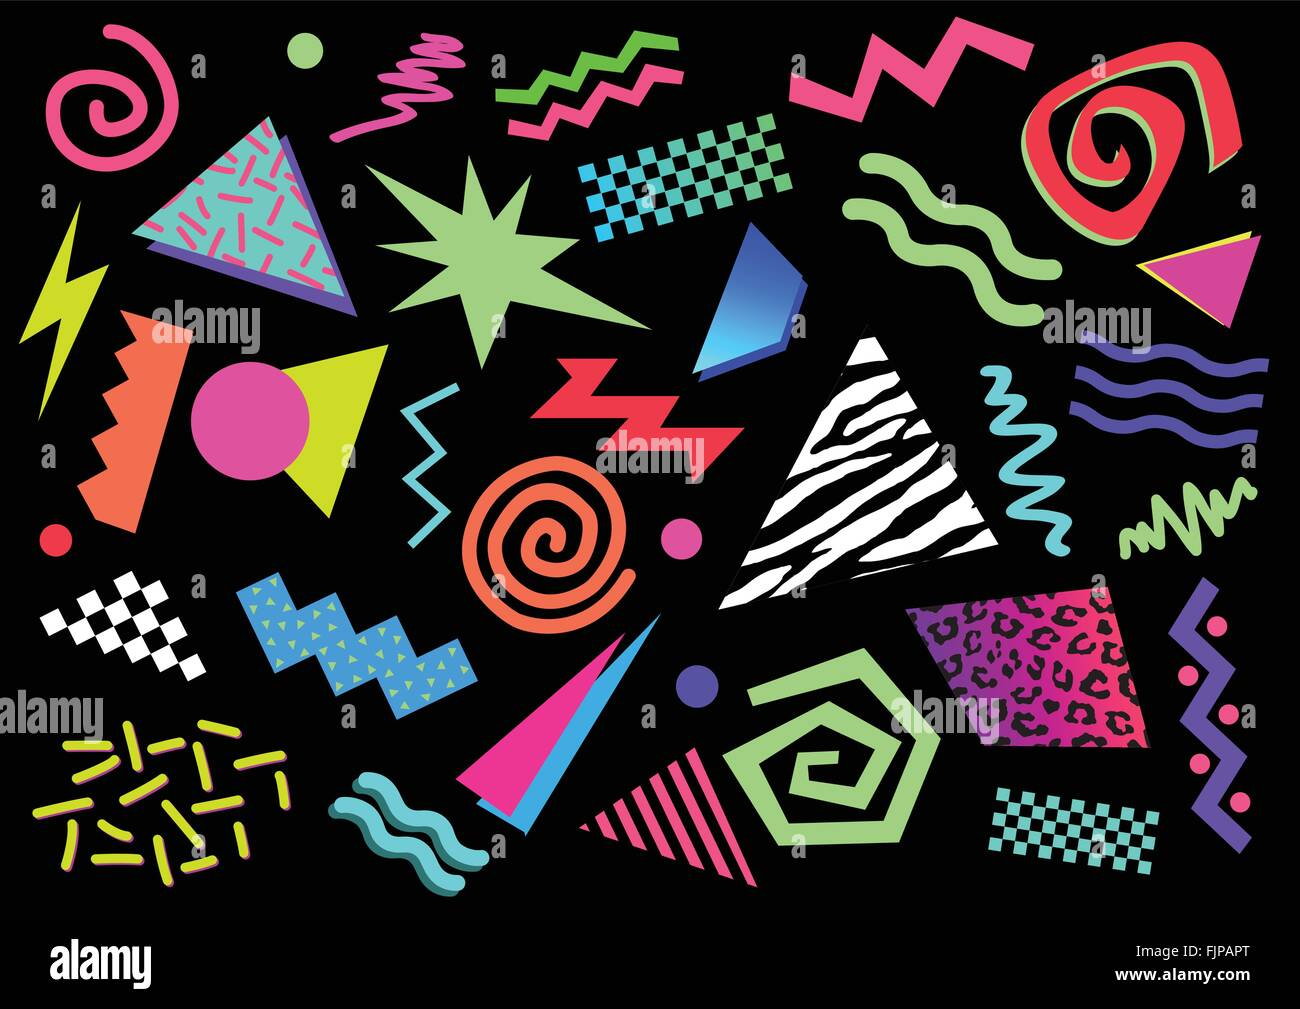 Vector illustration of abstract shapes and bright colors from between the 80s and the 90s - Stock Vector